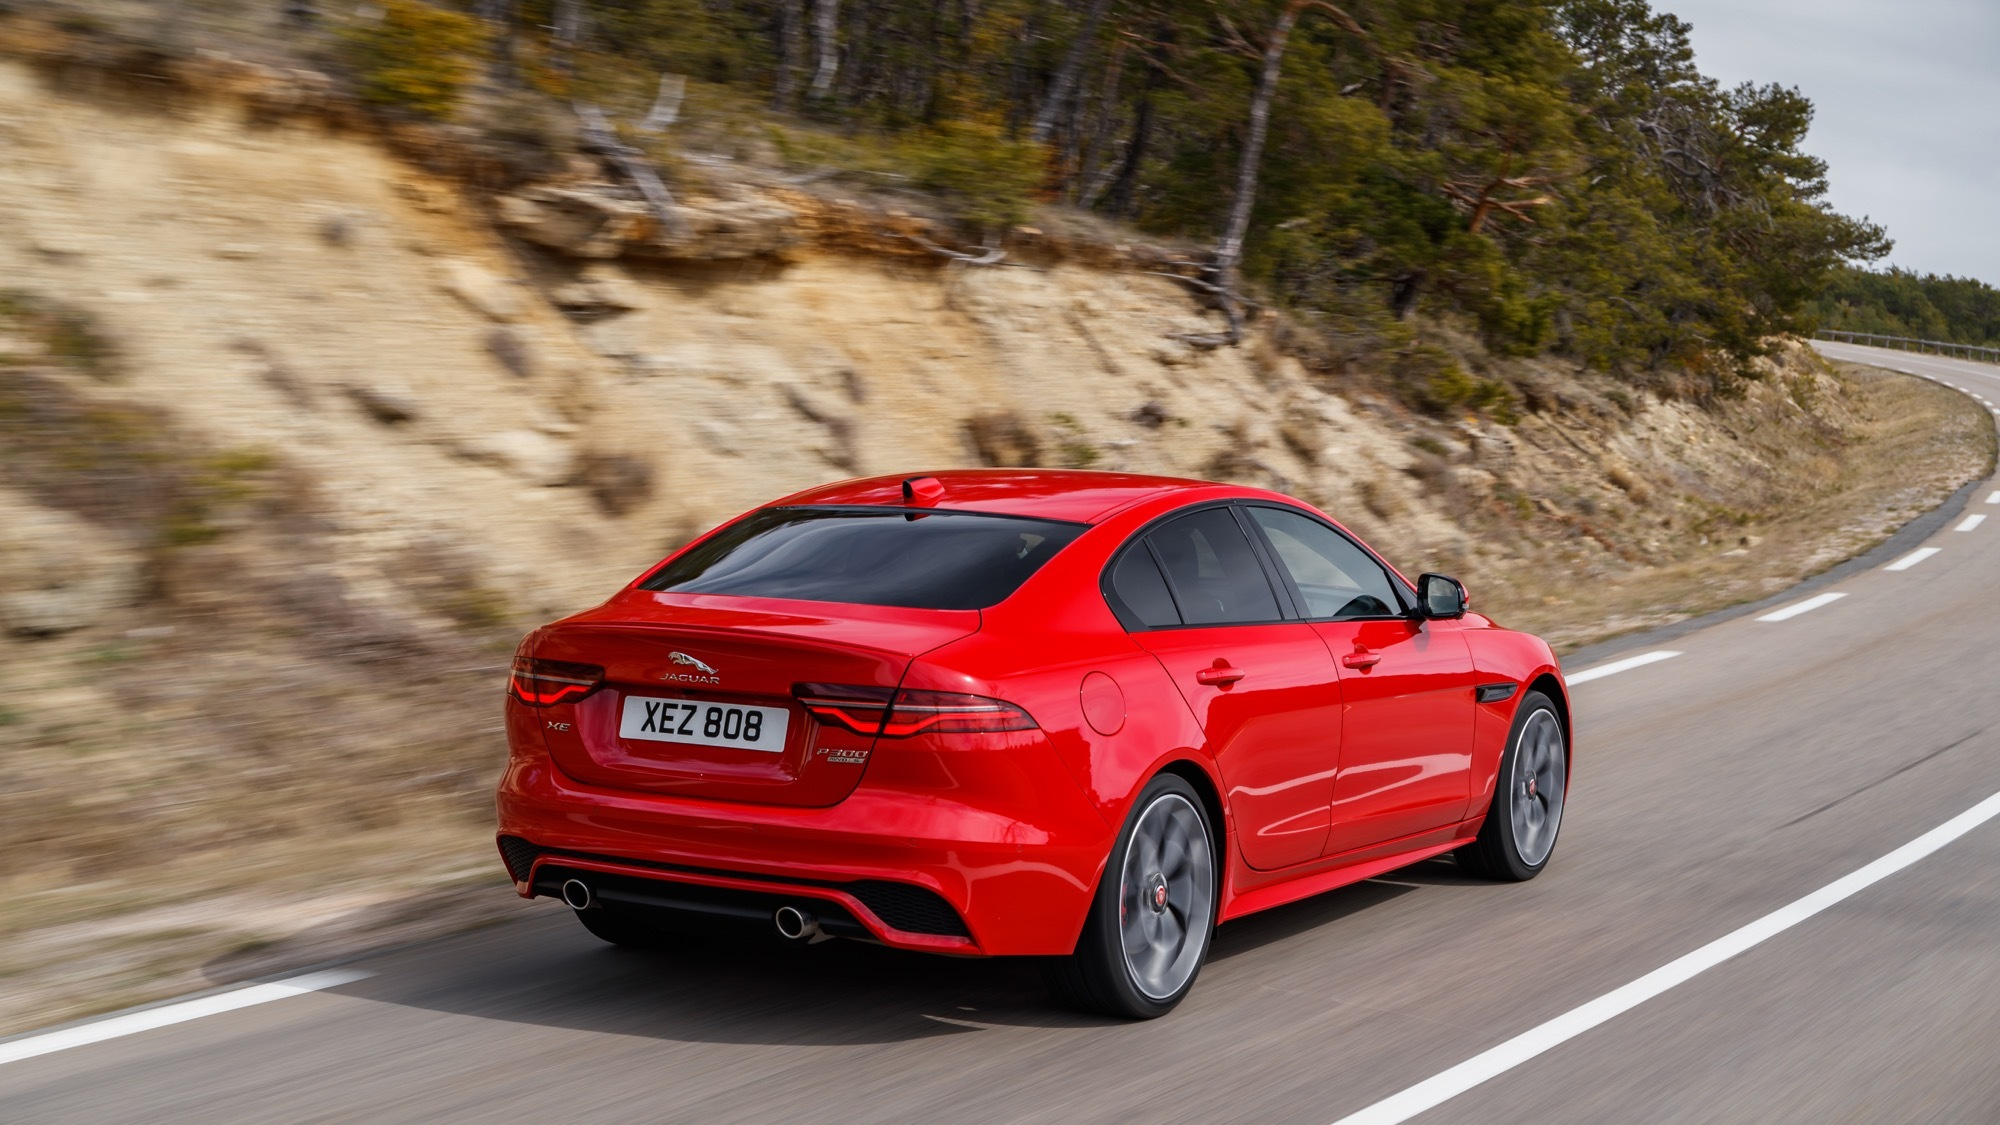 2020 jaguar xe first drive review | specs, photos